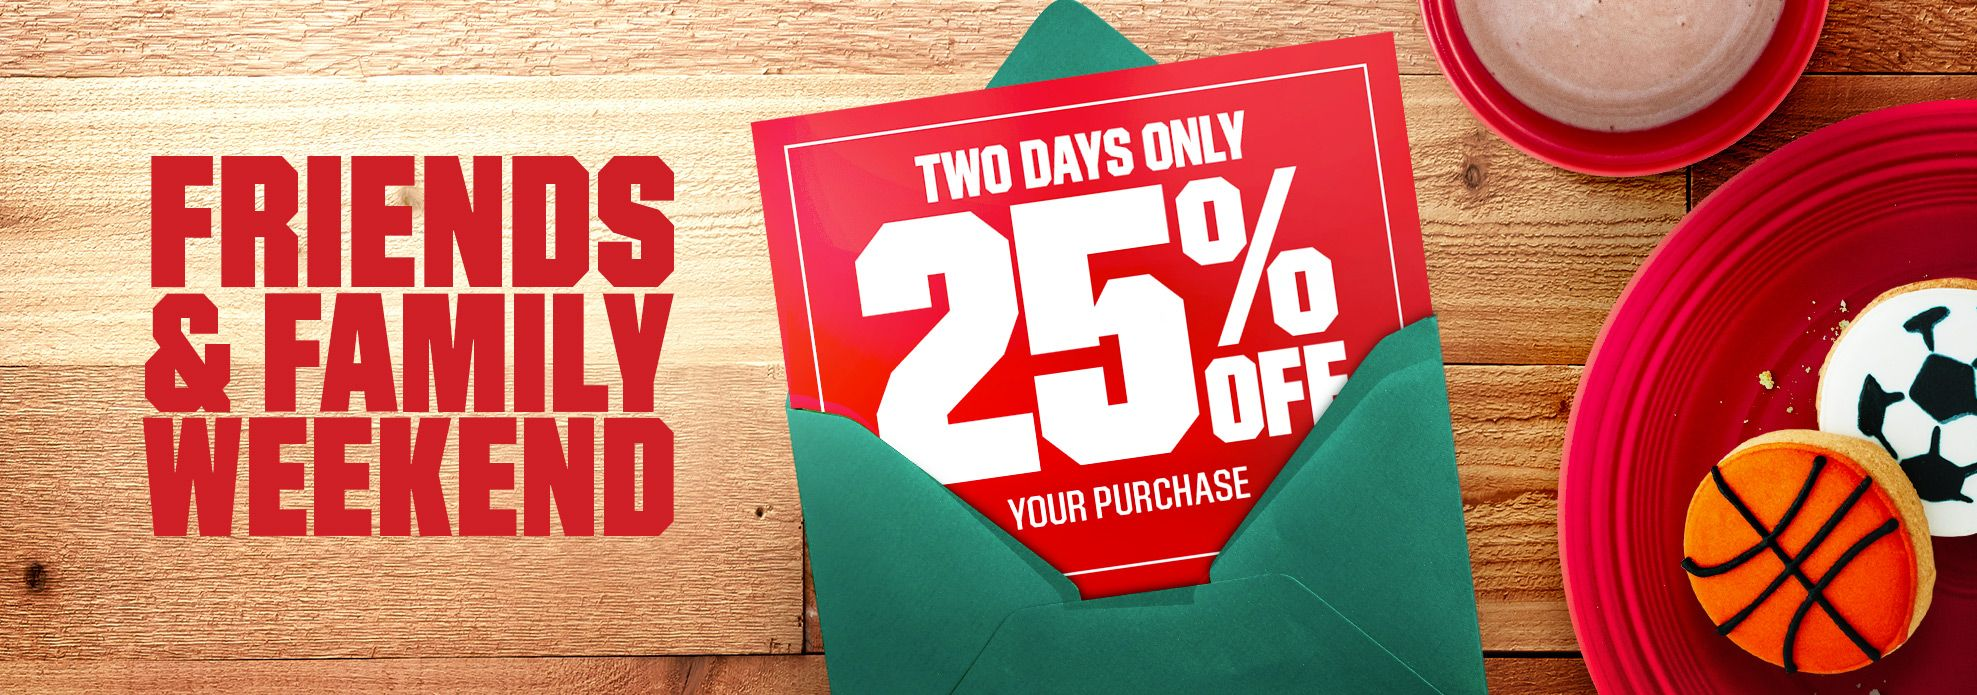 Two Days Only - 25% Off Your Purchase